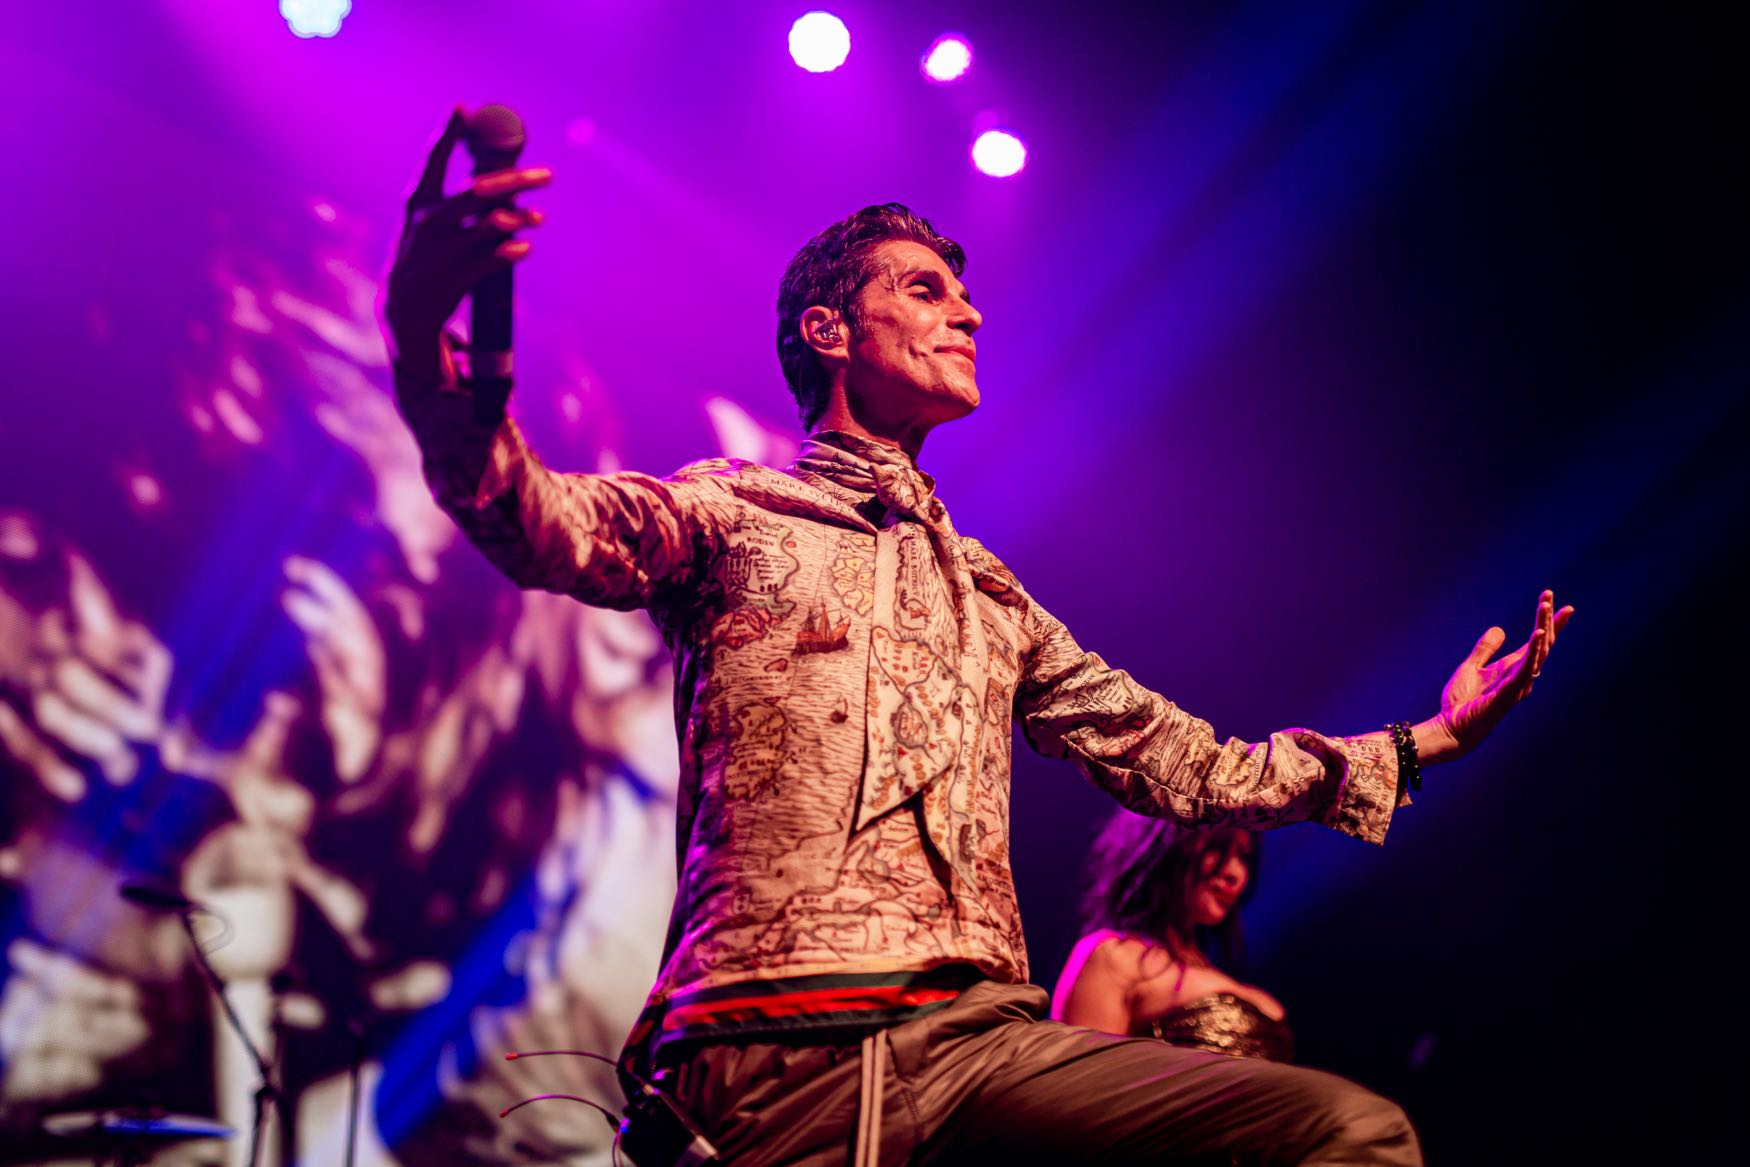 Perry Farrell, Above Ground @ Fonda Theatre 9/16/19. Photo by Derrick K. Lee, Esq. (@Methodman13) for www.BlurredCulture.com.